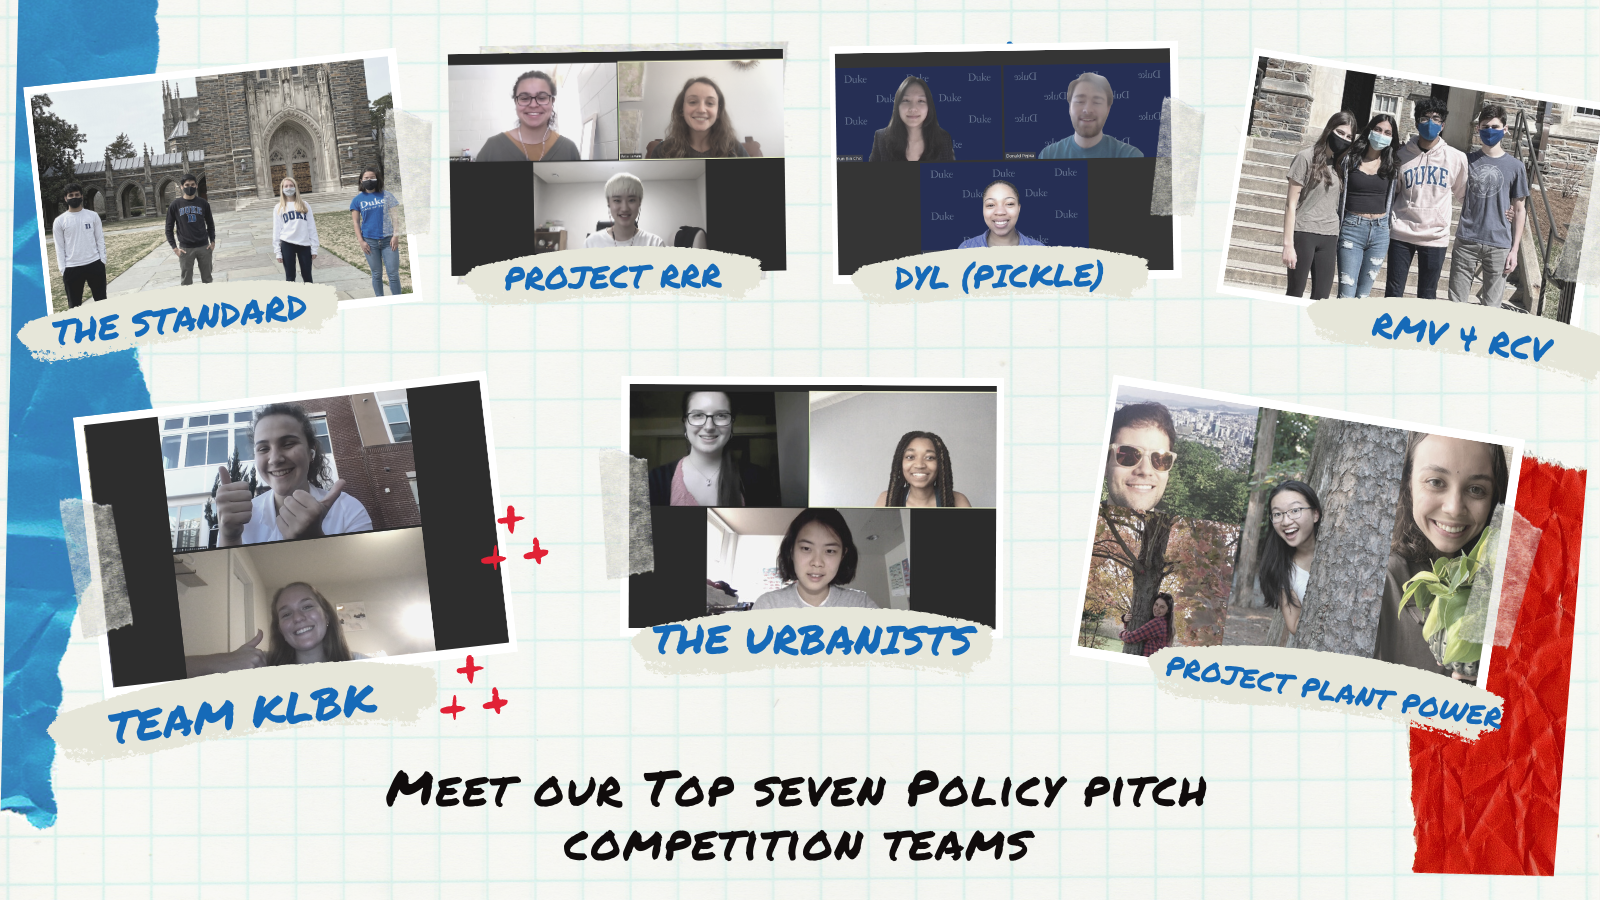 Meet our Top Seven Policy Pitch Competition Teams